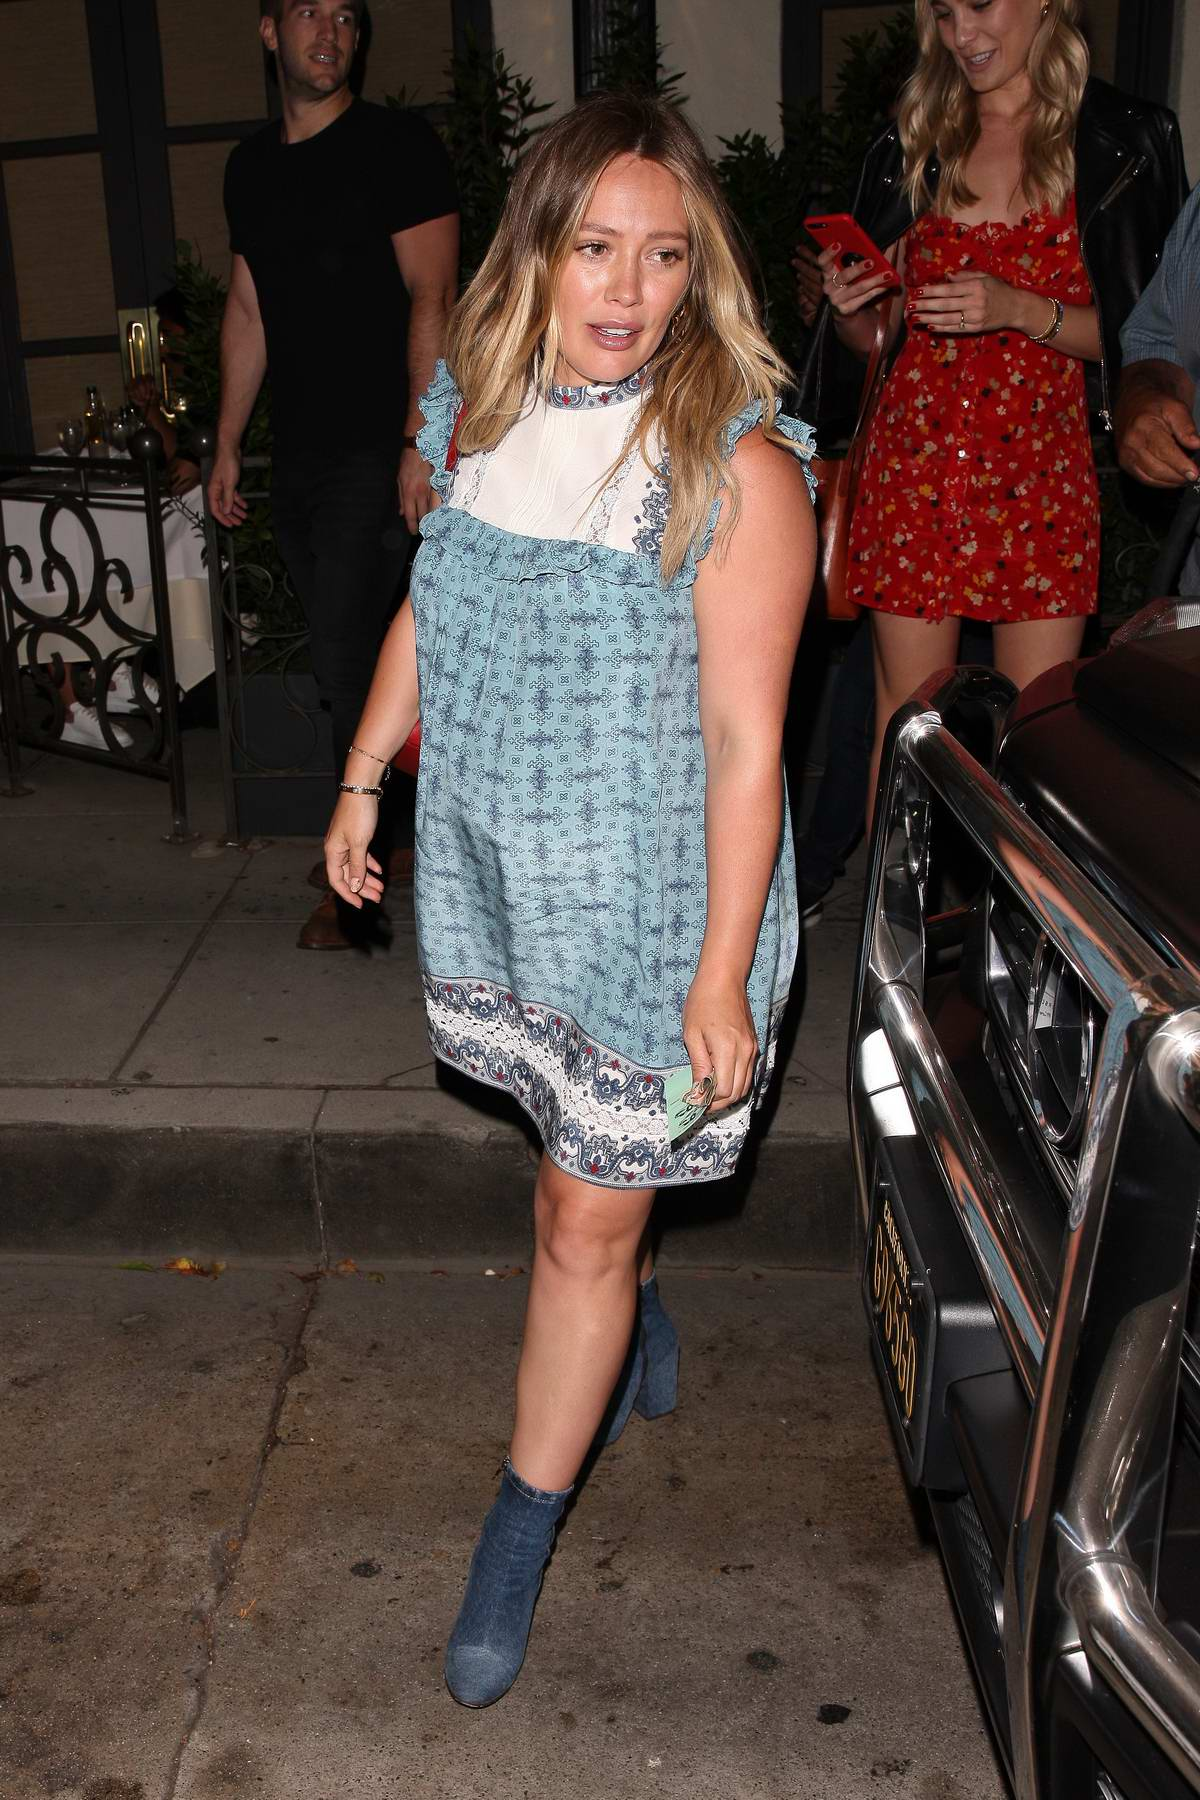 Hilary Duff Leaving Madeo Italian Restaurant In Beverly